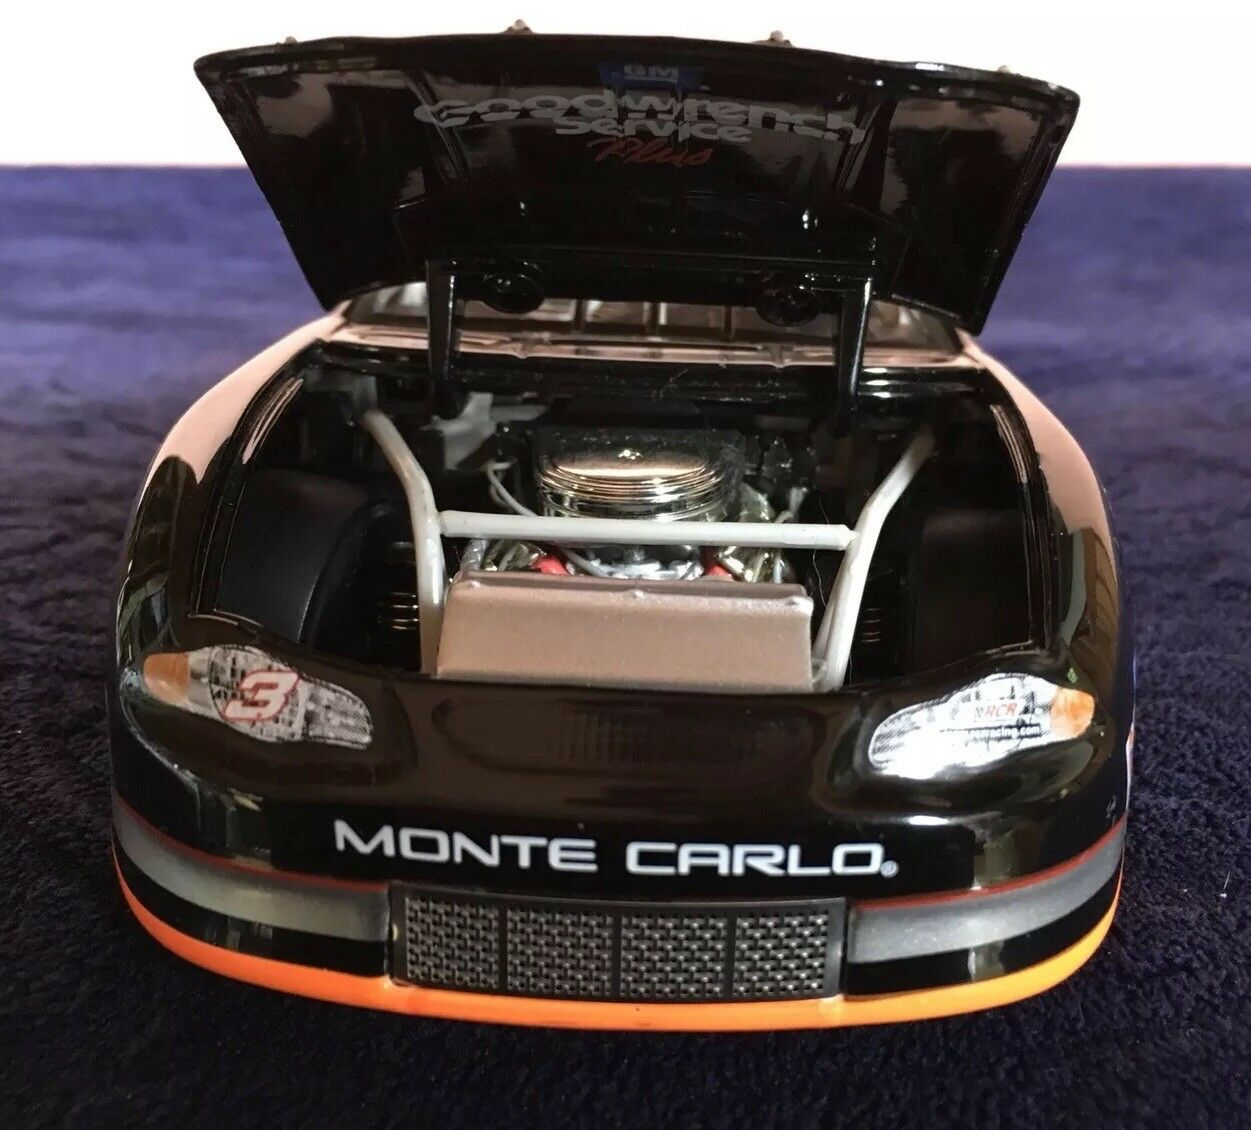 Dale Earnhardt  3 GM Goodwrench Goodwrench Goodwrench Service Plus Richmond Race 2000 Monte Carlo 4057cd